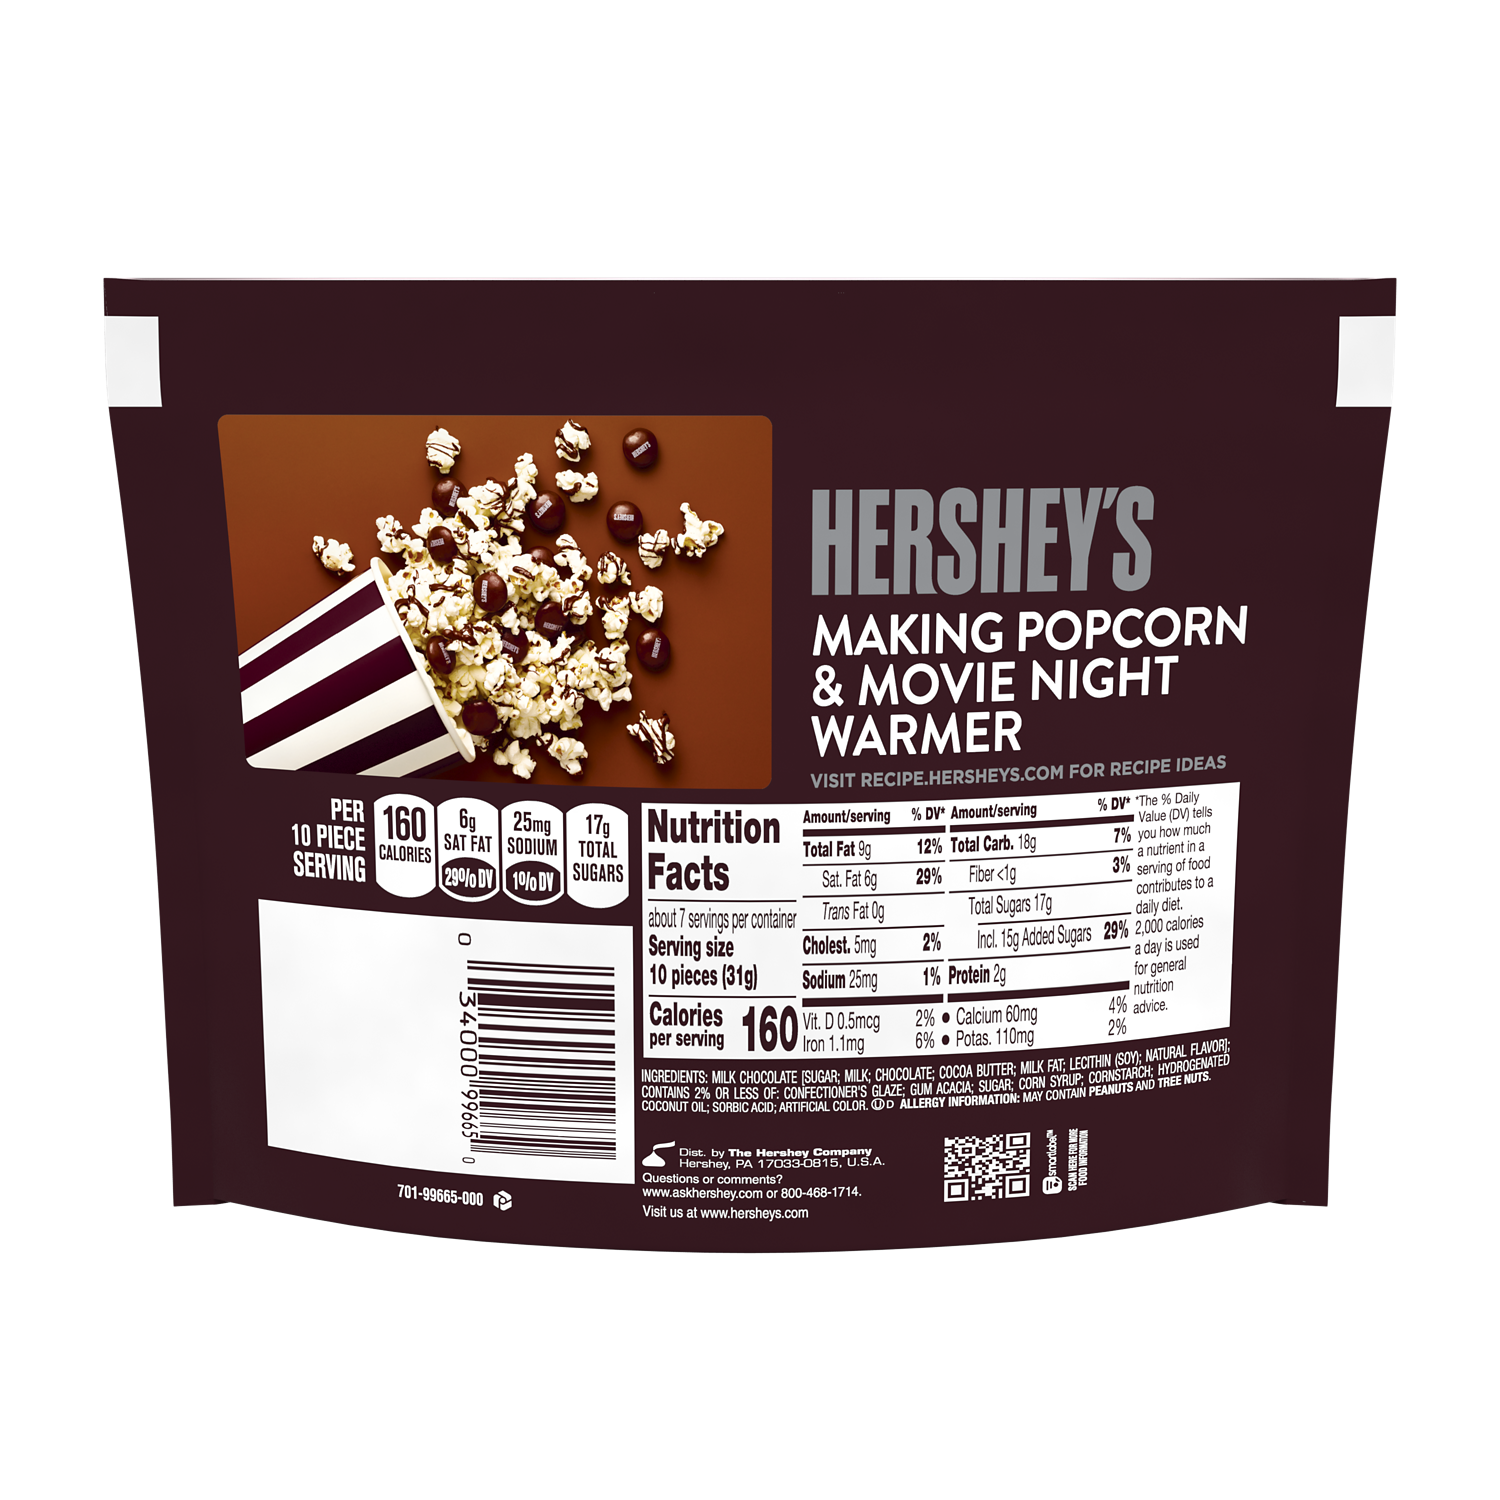 HERSHEY'S DROPS Milk Chocolate Candy, 7.6 oz bag - Back of Package